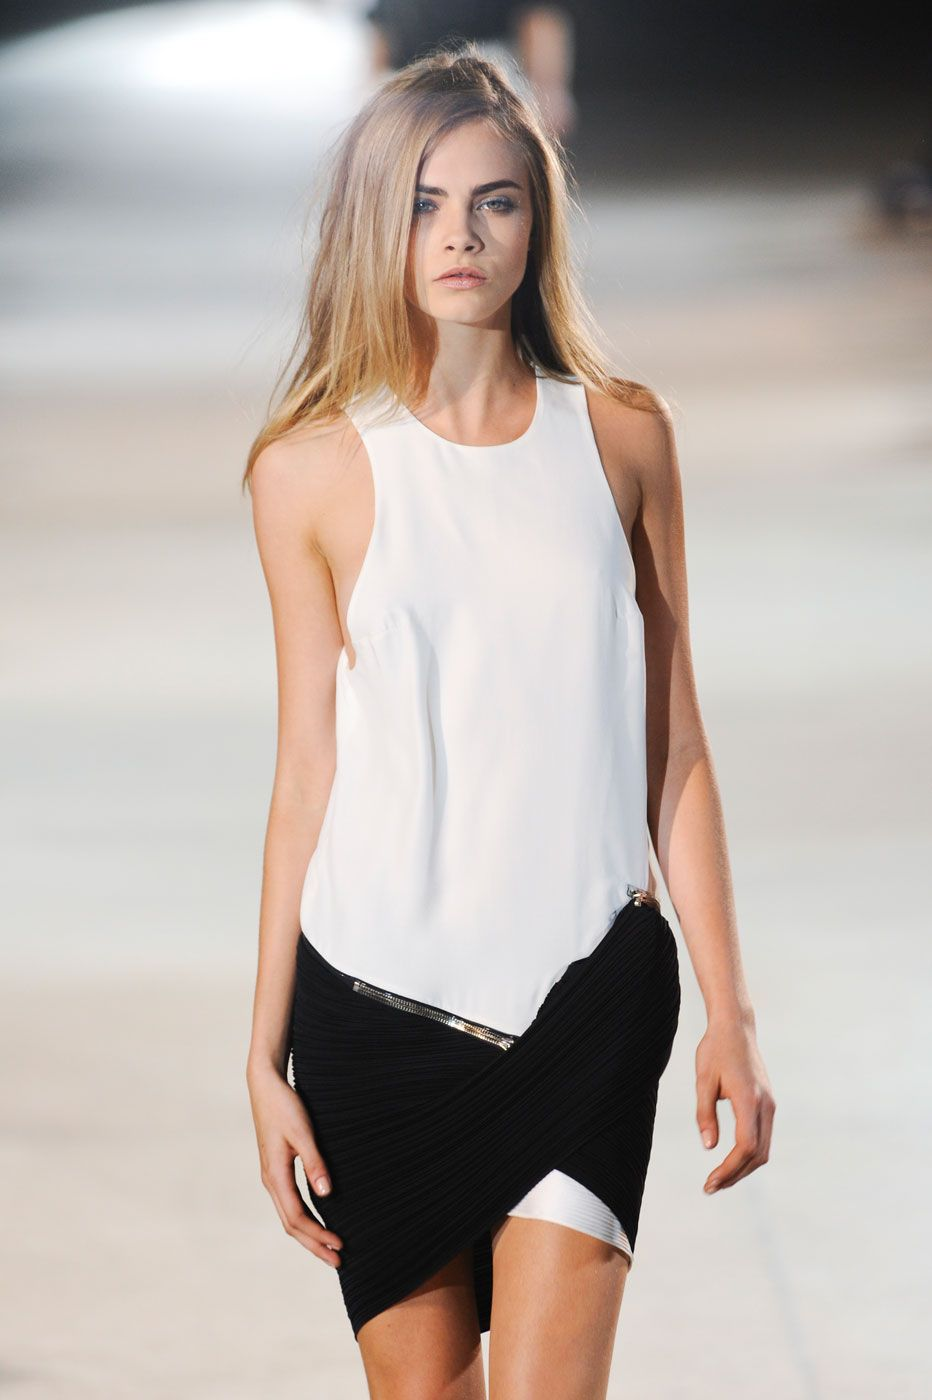 Cara Delevingne for Anthony Vaccarello Spring/Summer 2013 | ♡Cara ...